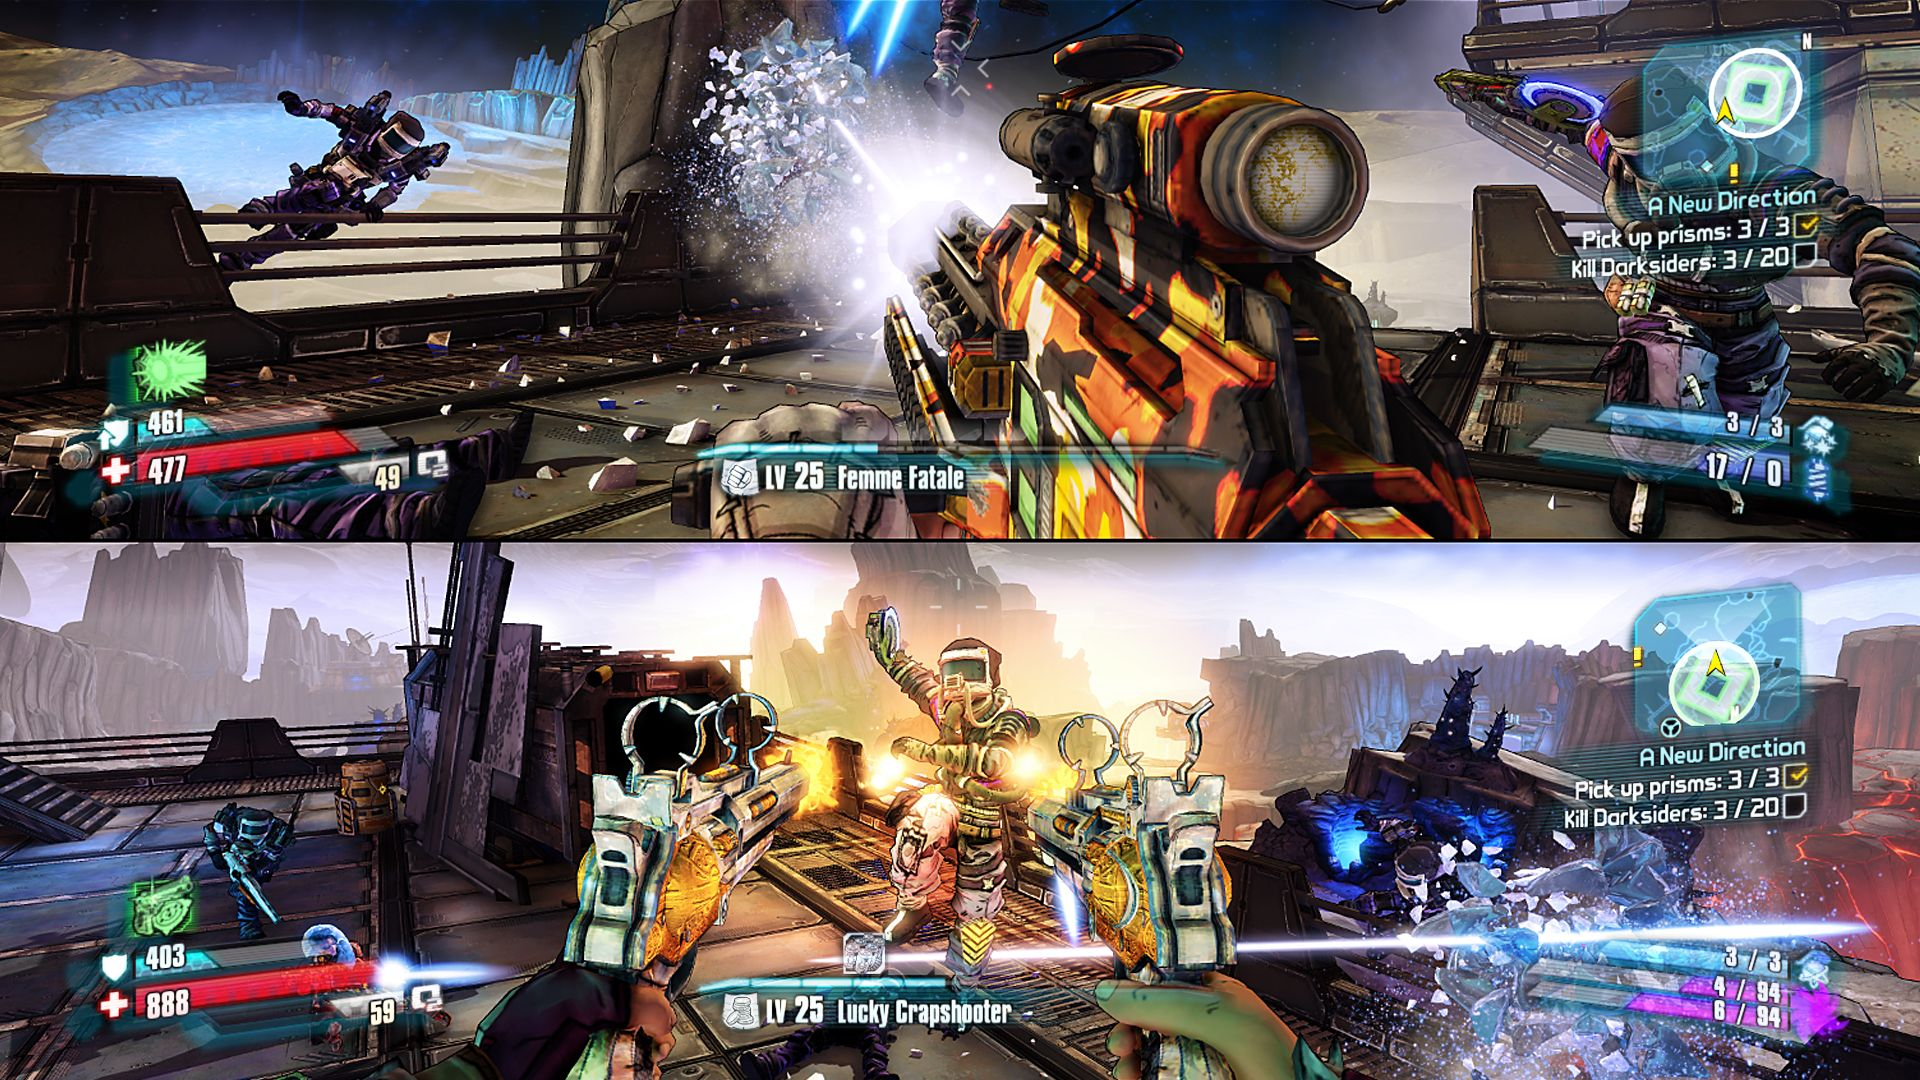 Co-Optimus - Review - Borderlands: The Pre-Sequel Co-Op Review